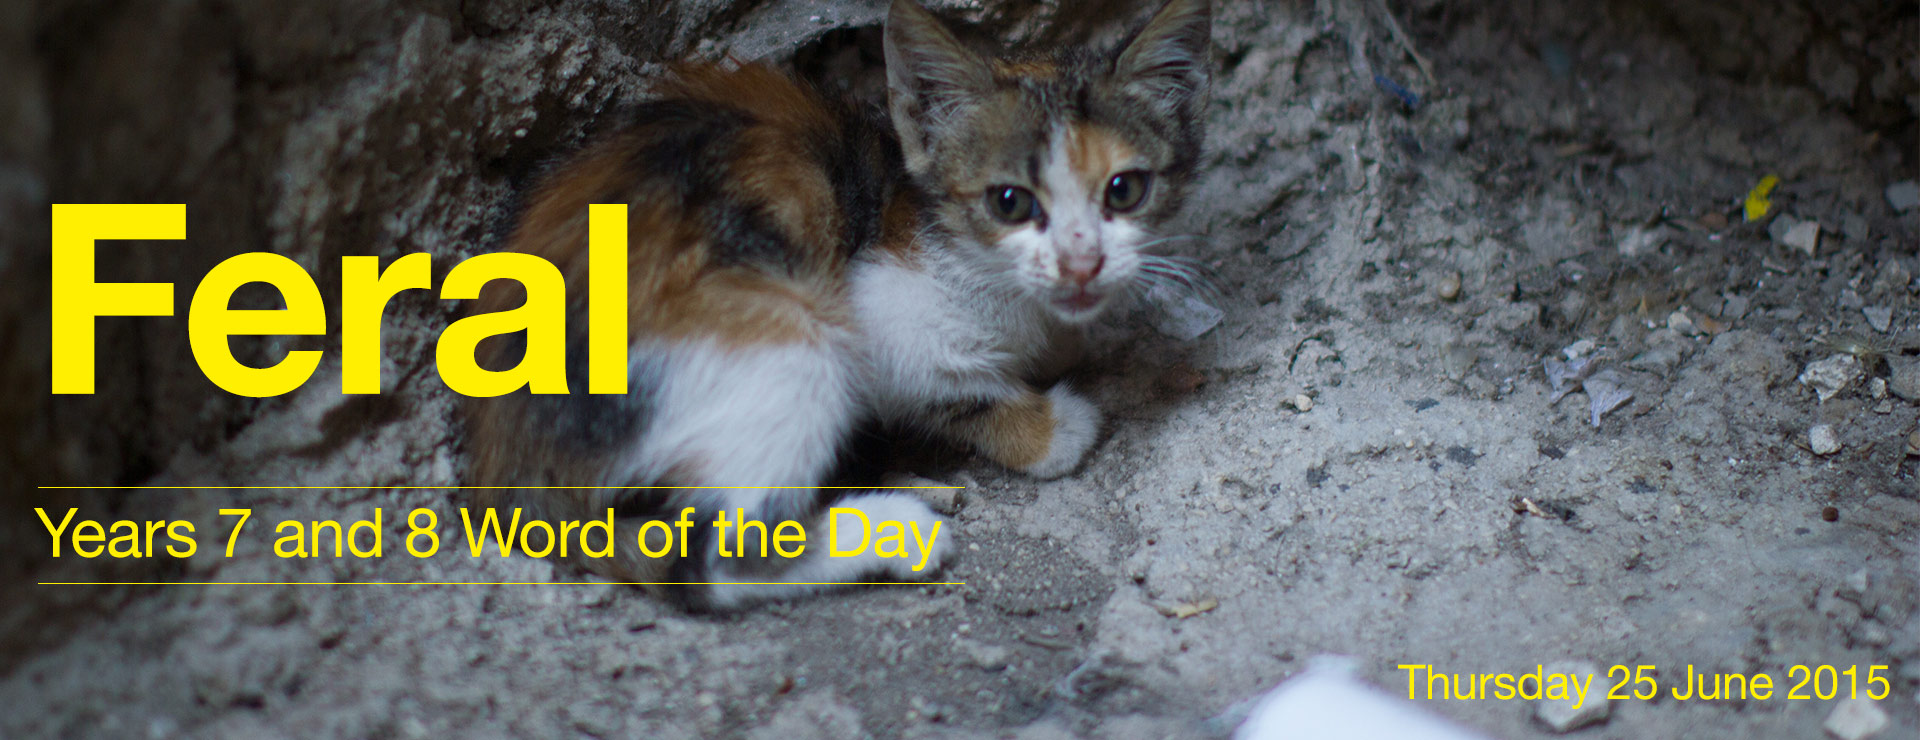 Word-of-the-Day-119.jpg